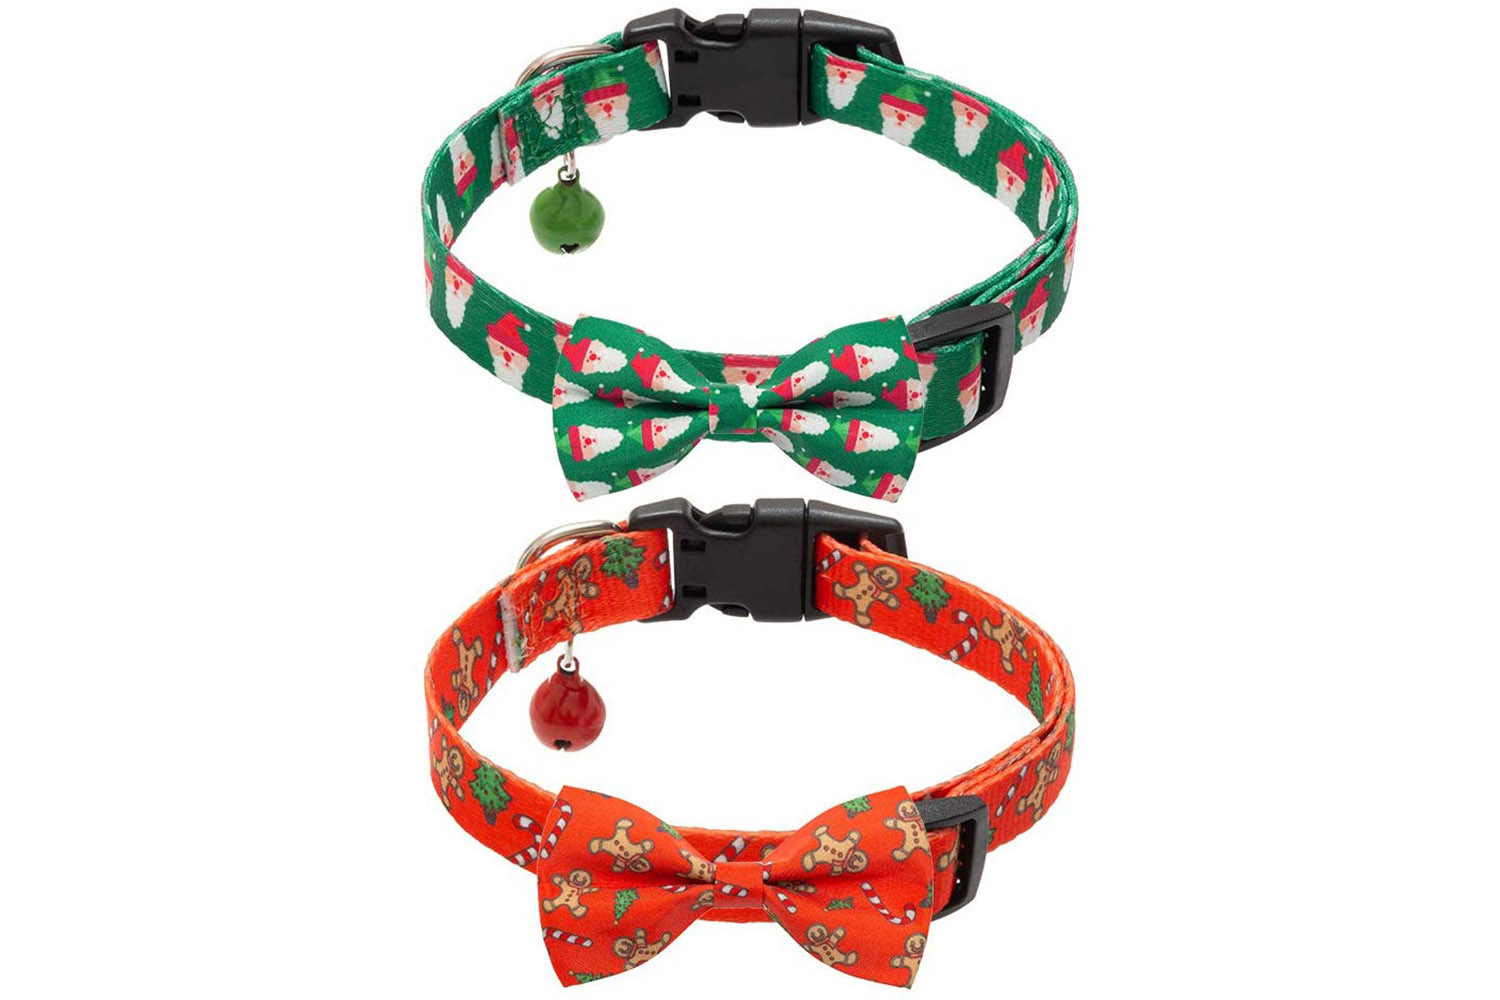 Double Trouble Collars